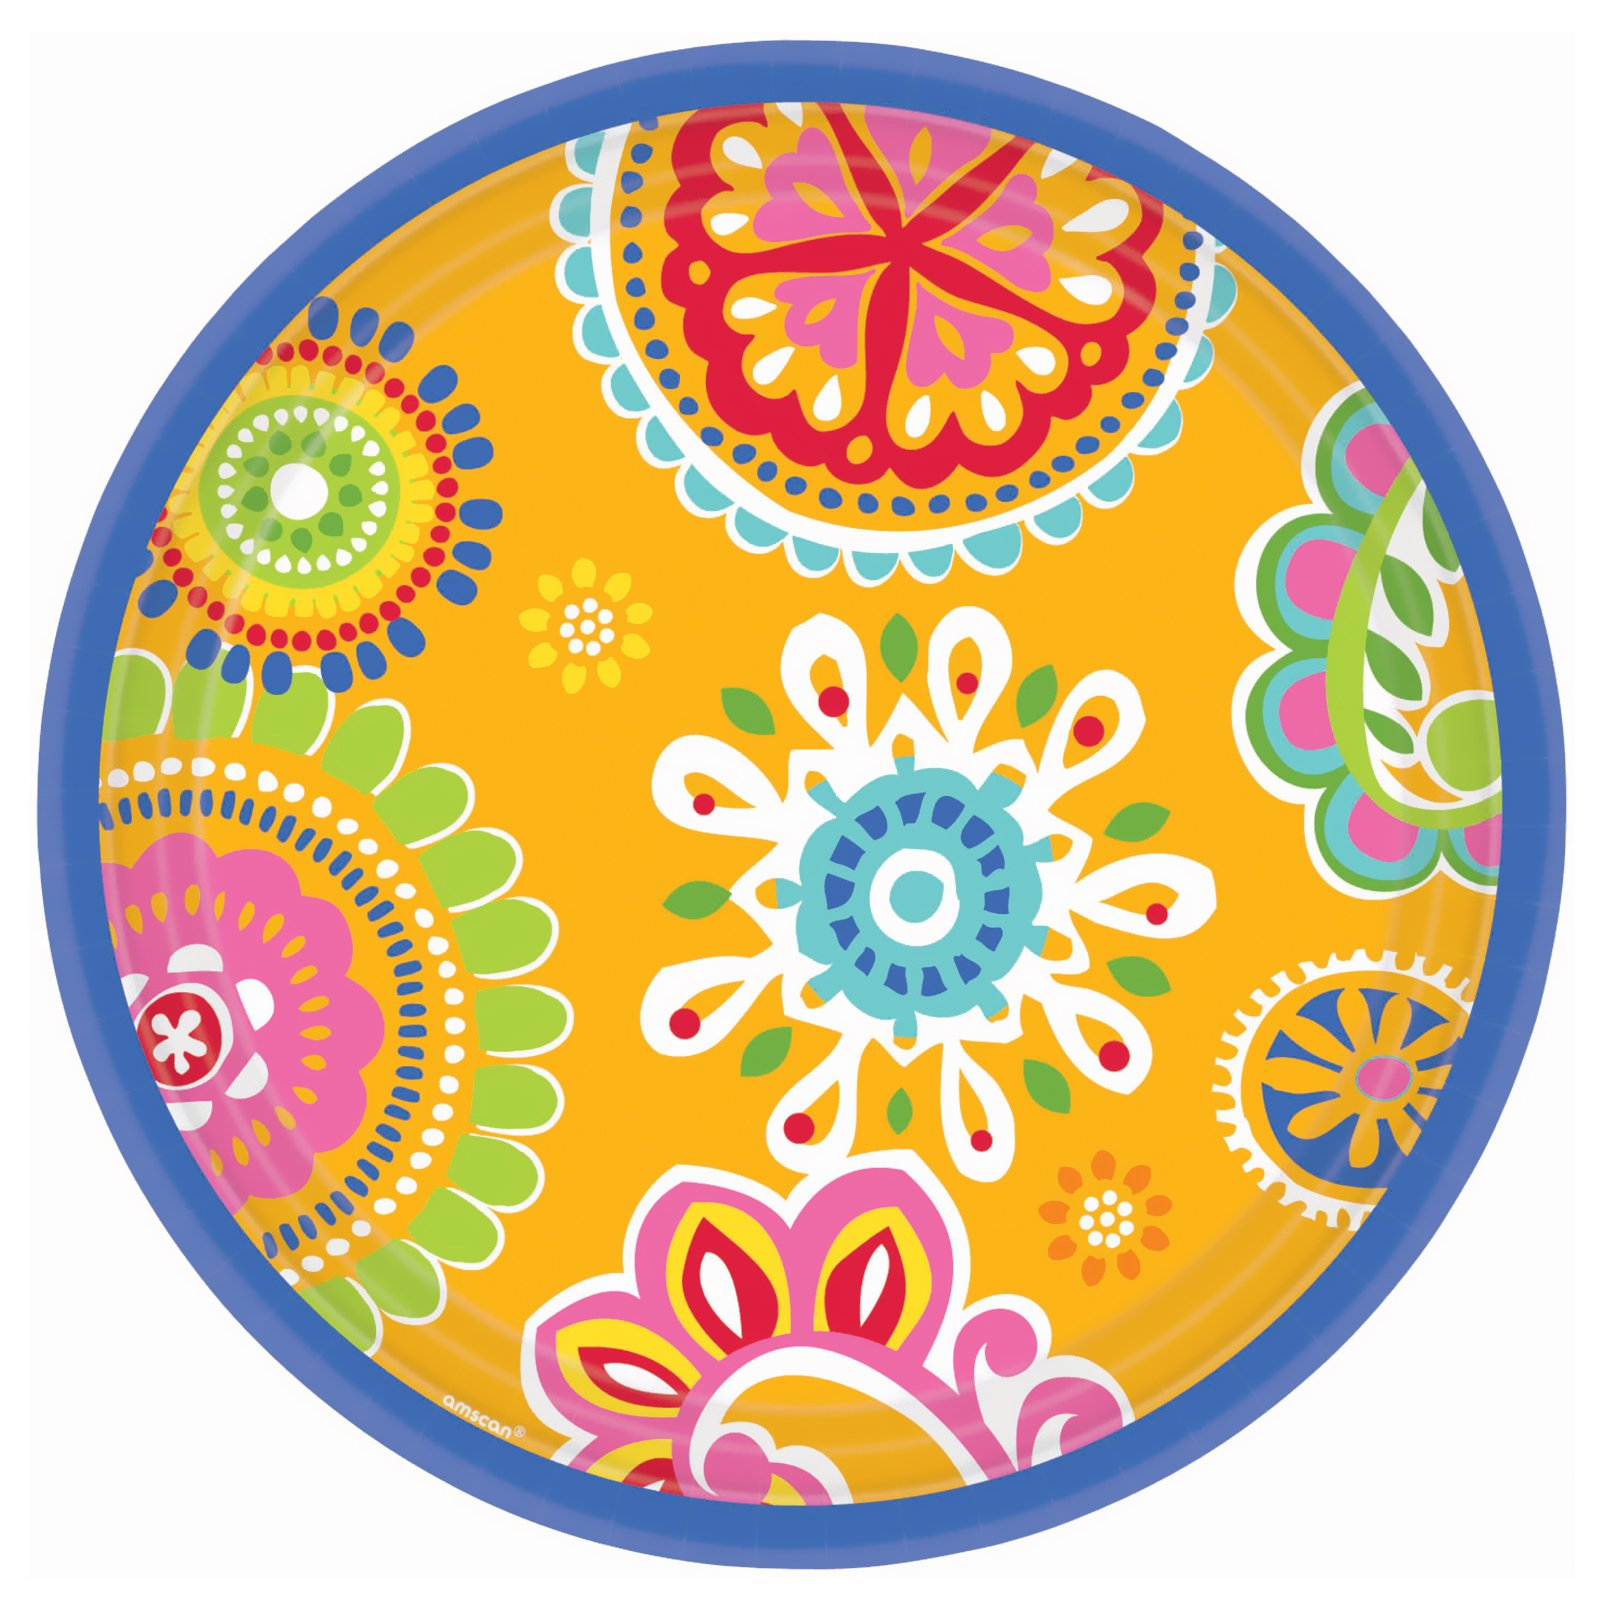 Cool Splash Banquet Dinner Plates (8 count)